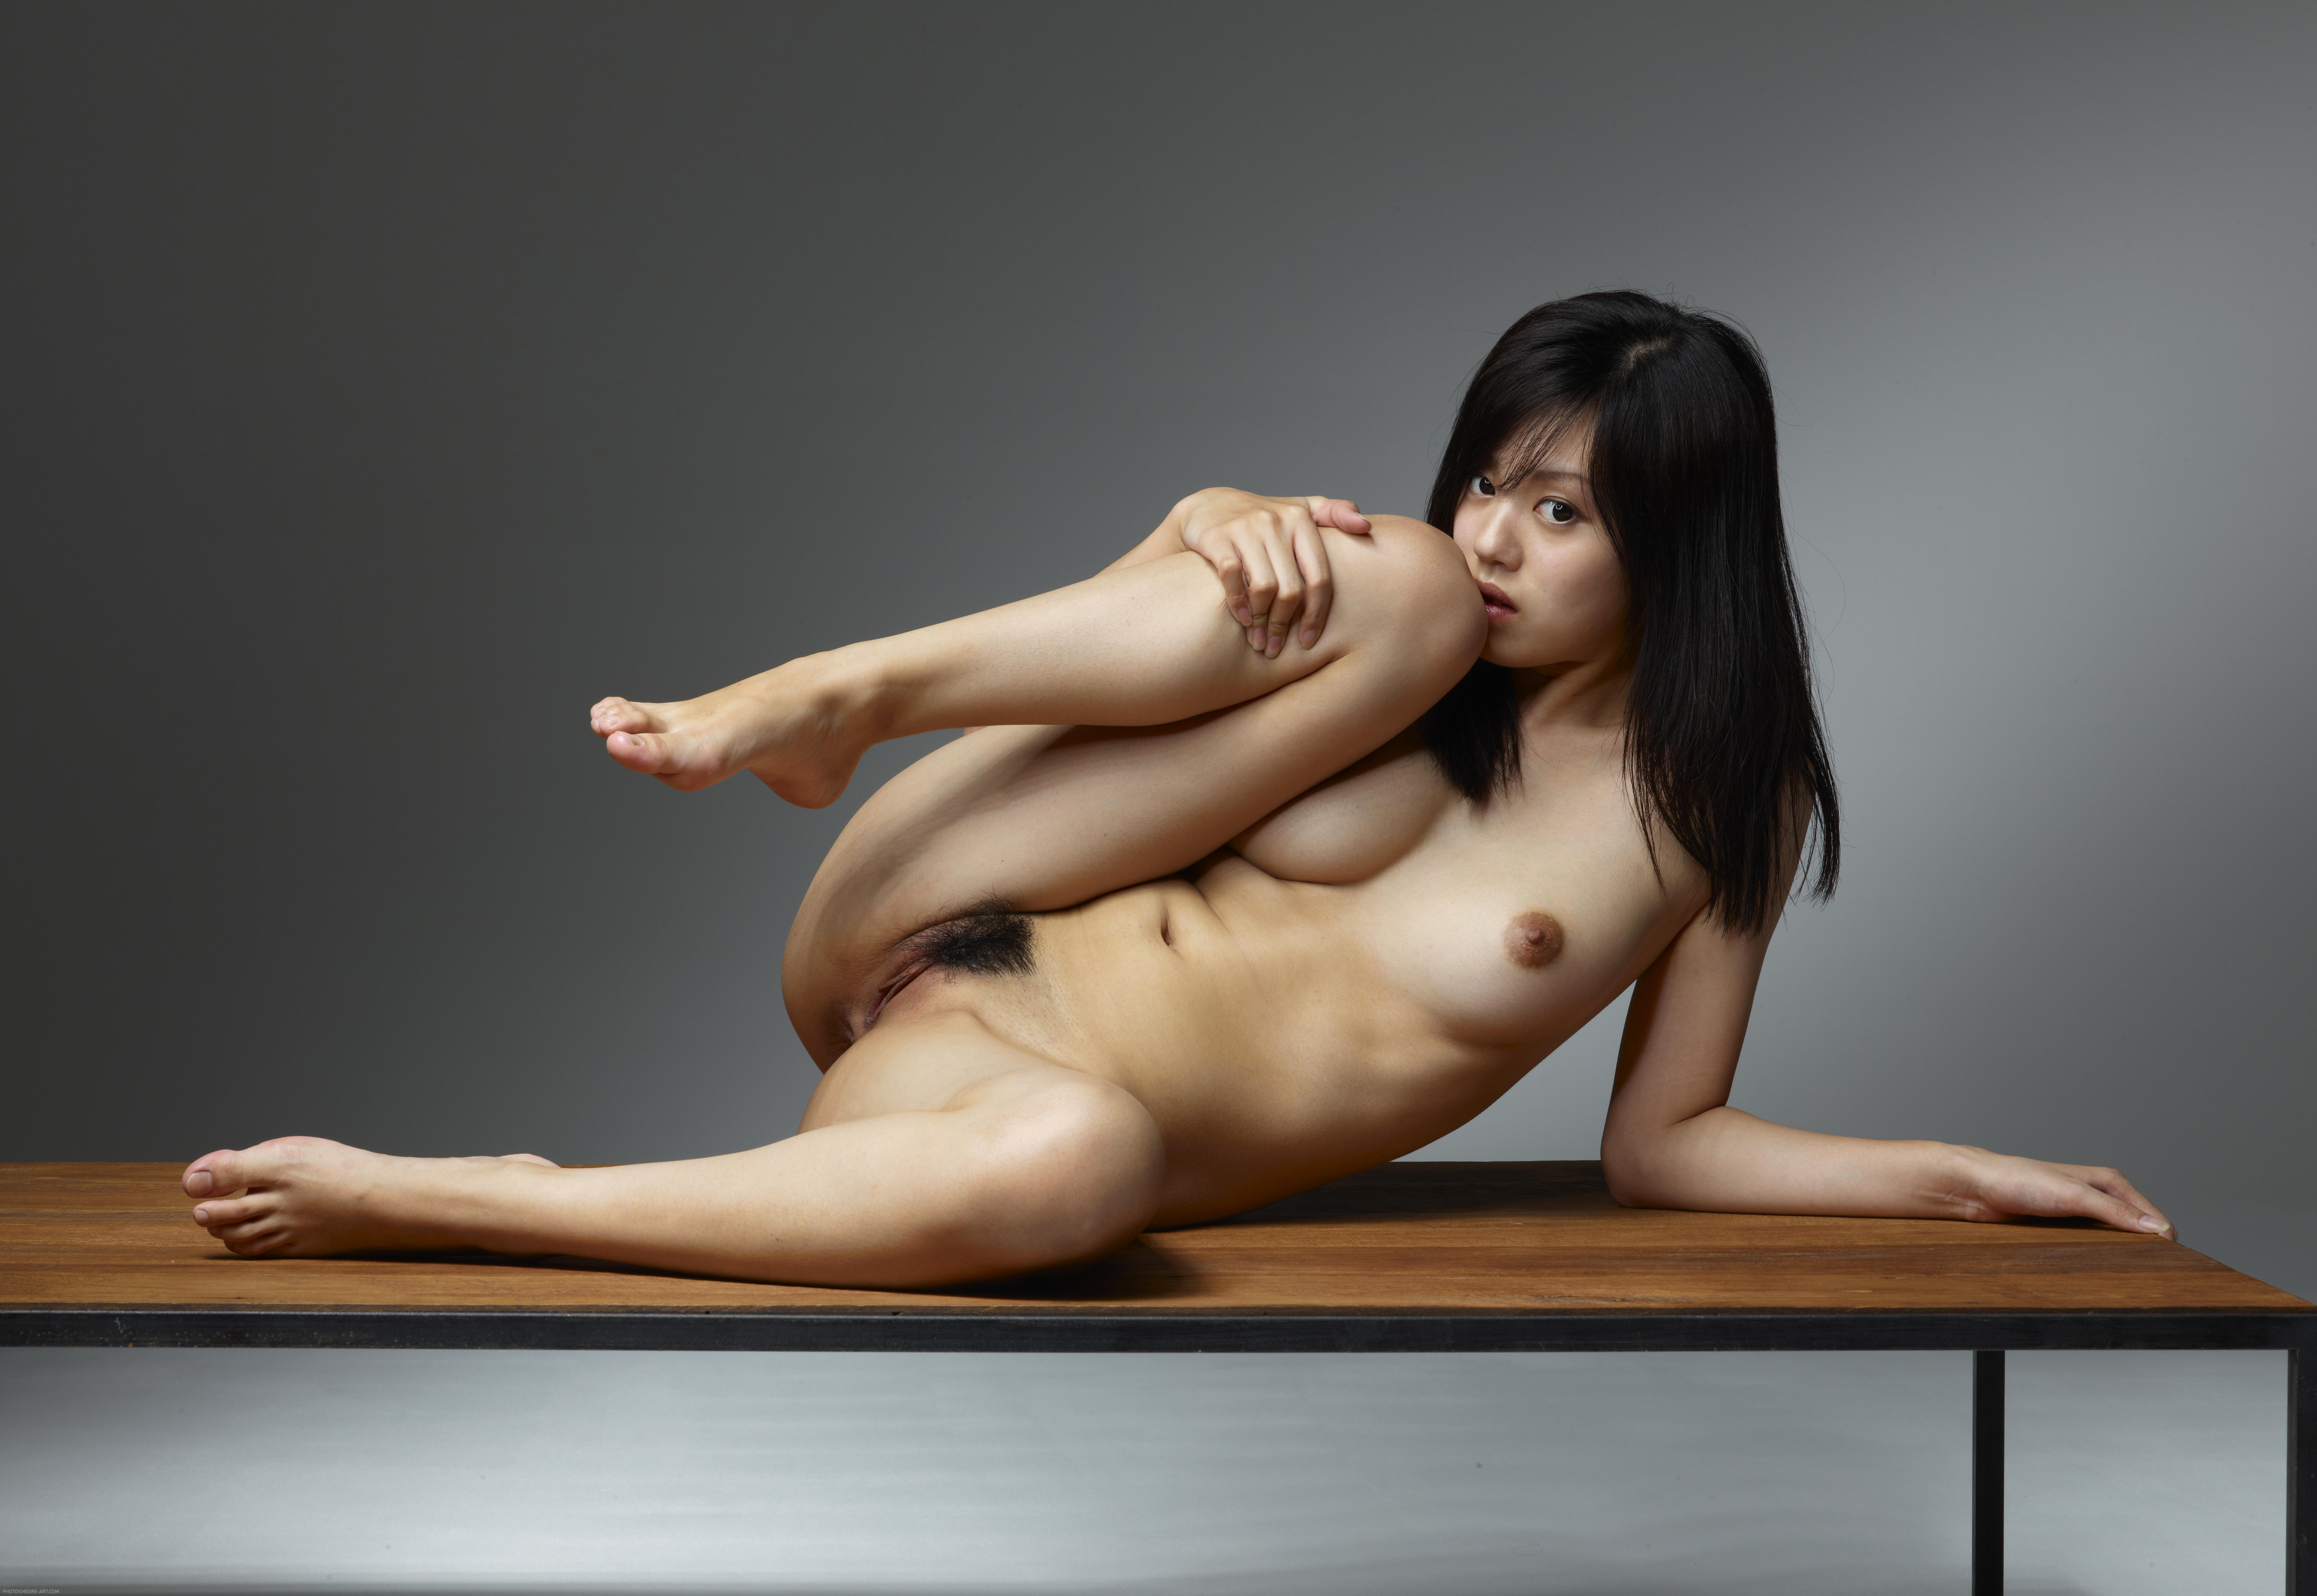 Indian see through nude fakes